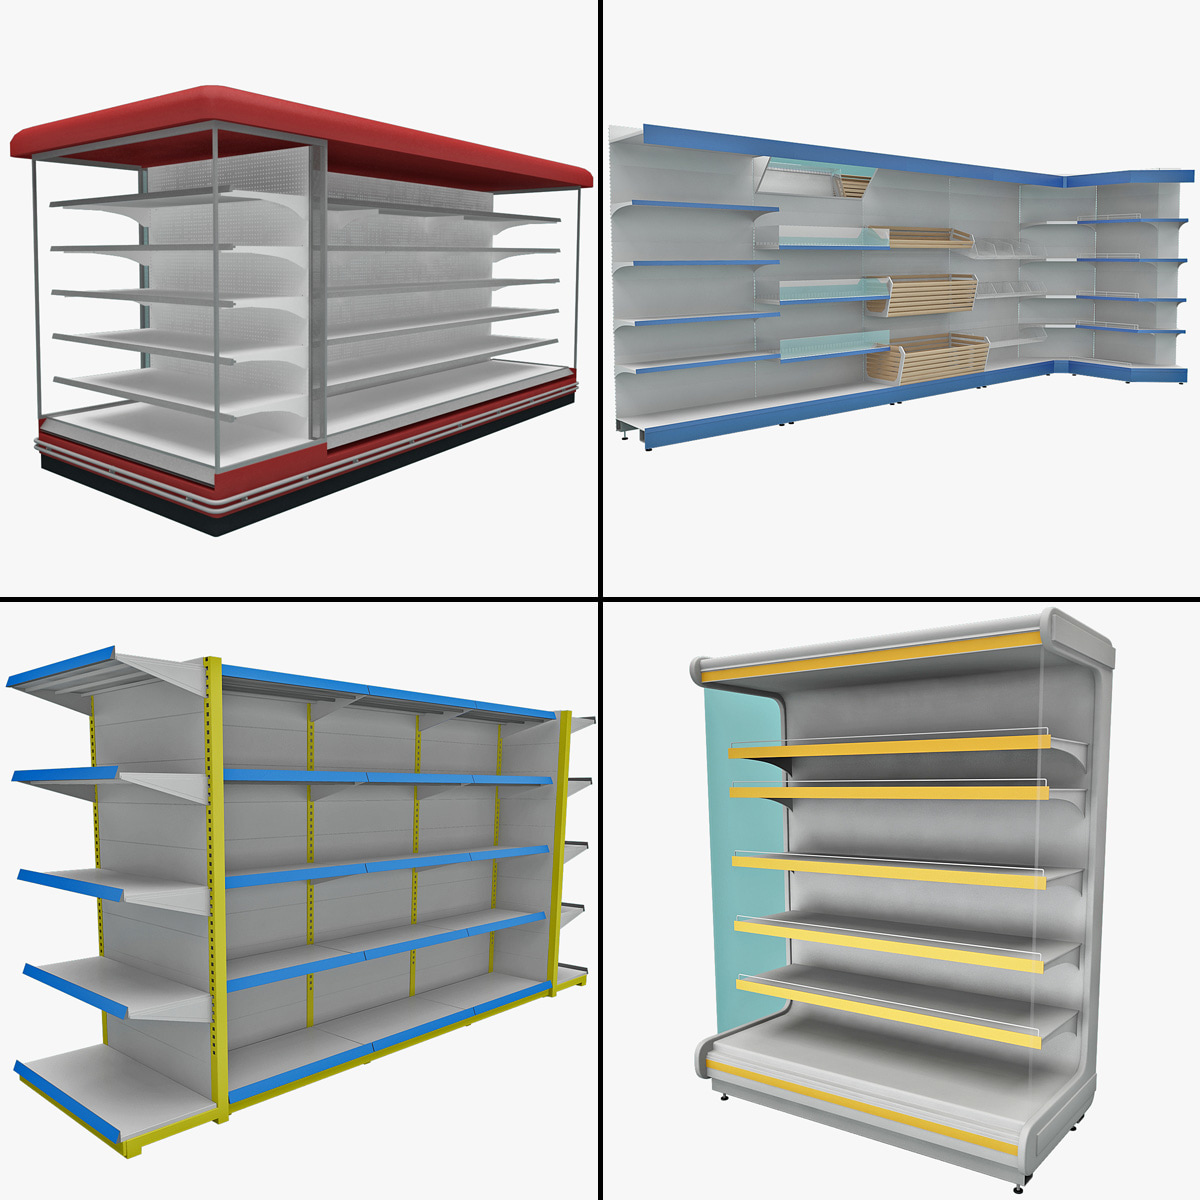 3ds max supermarket shelves